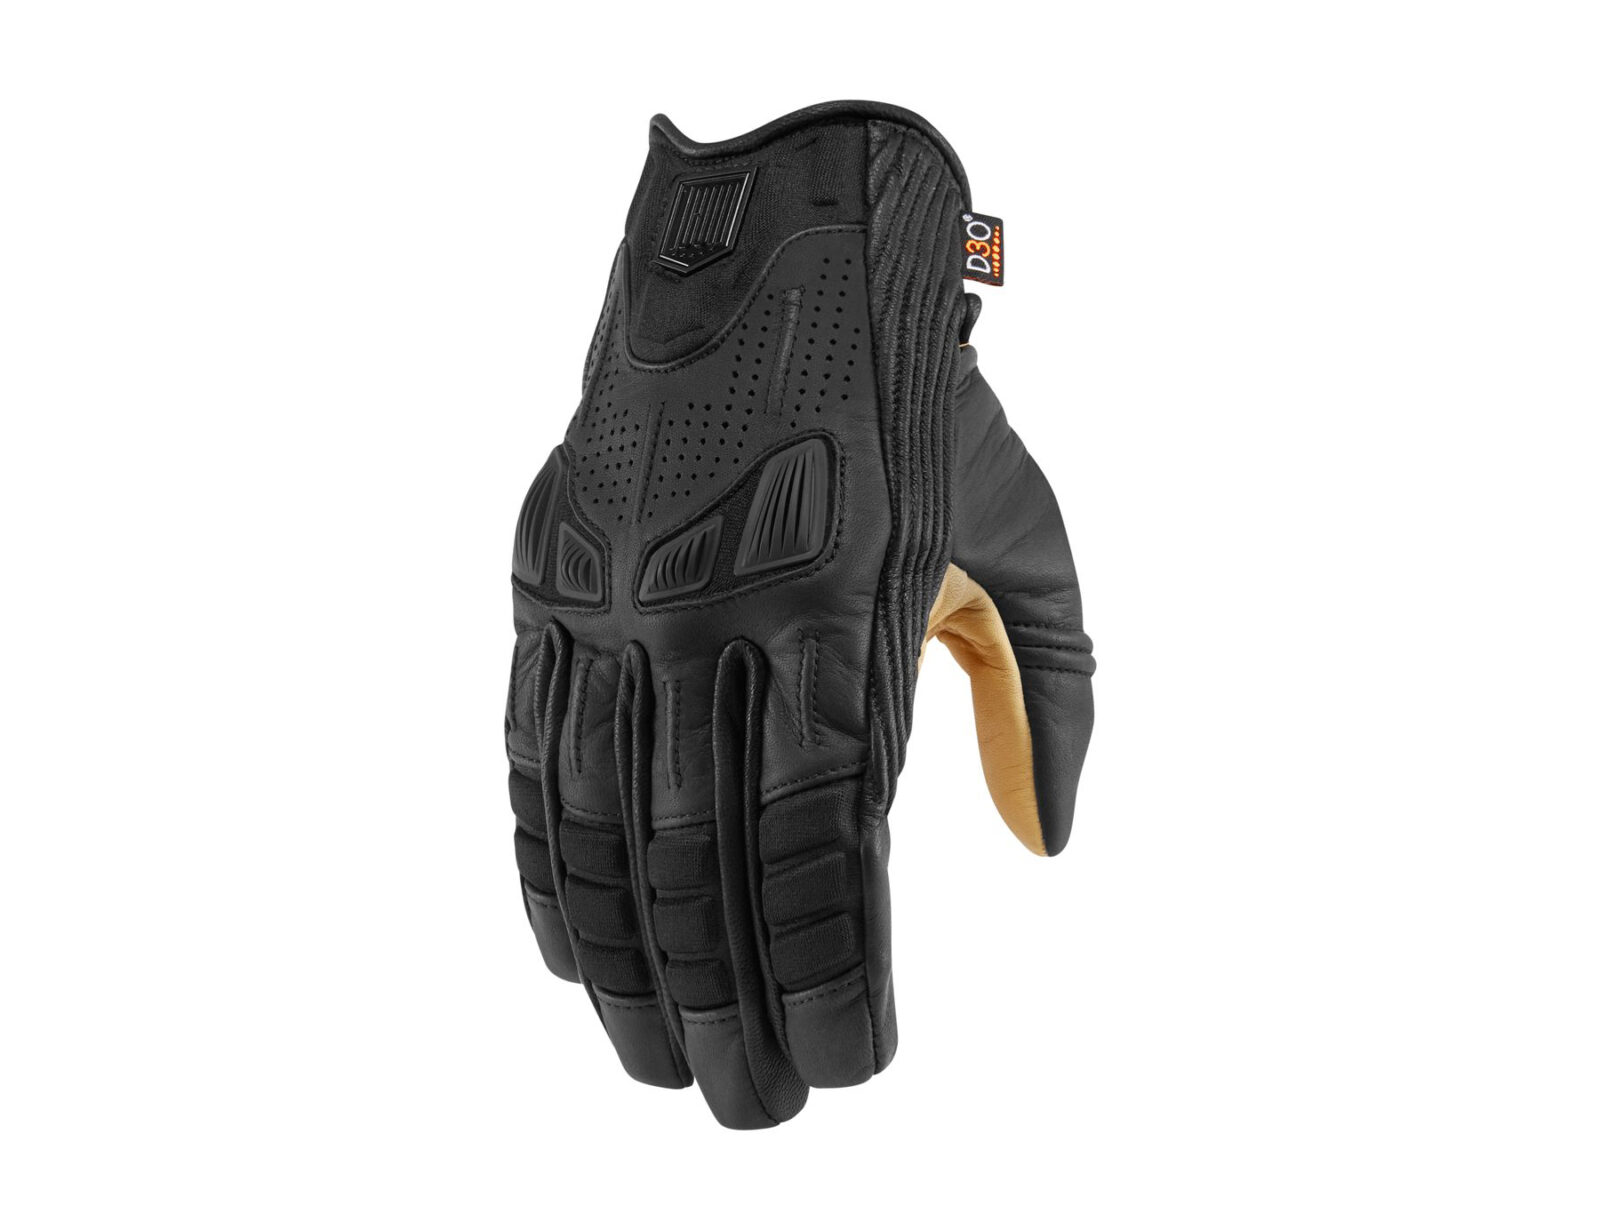 Icon 1000 Axys Gloves 1600x1222 - Icon 1000 Axys Gloves